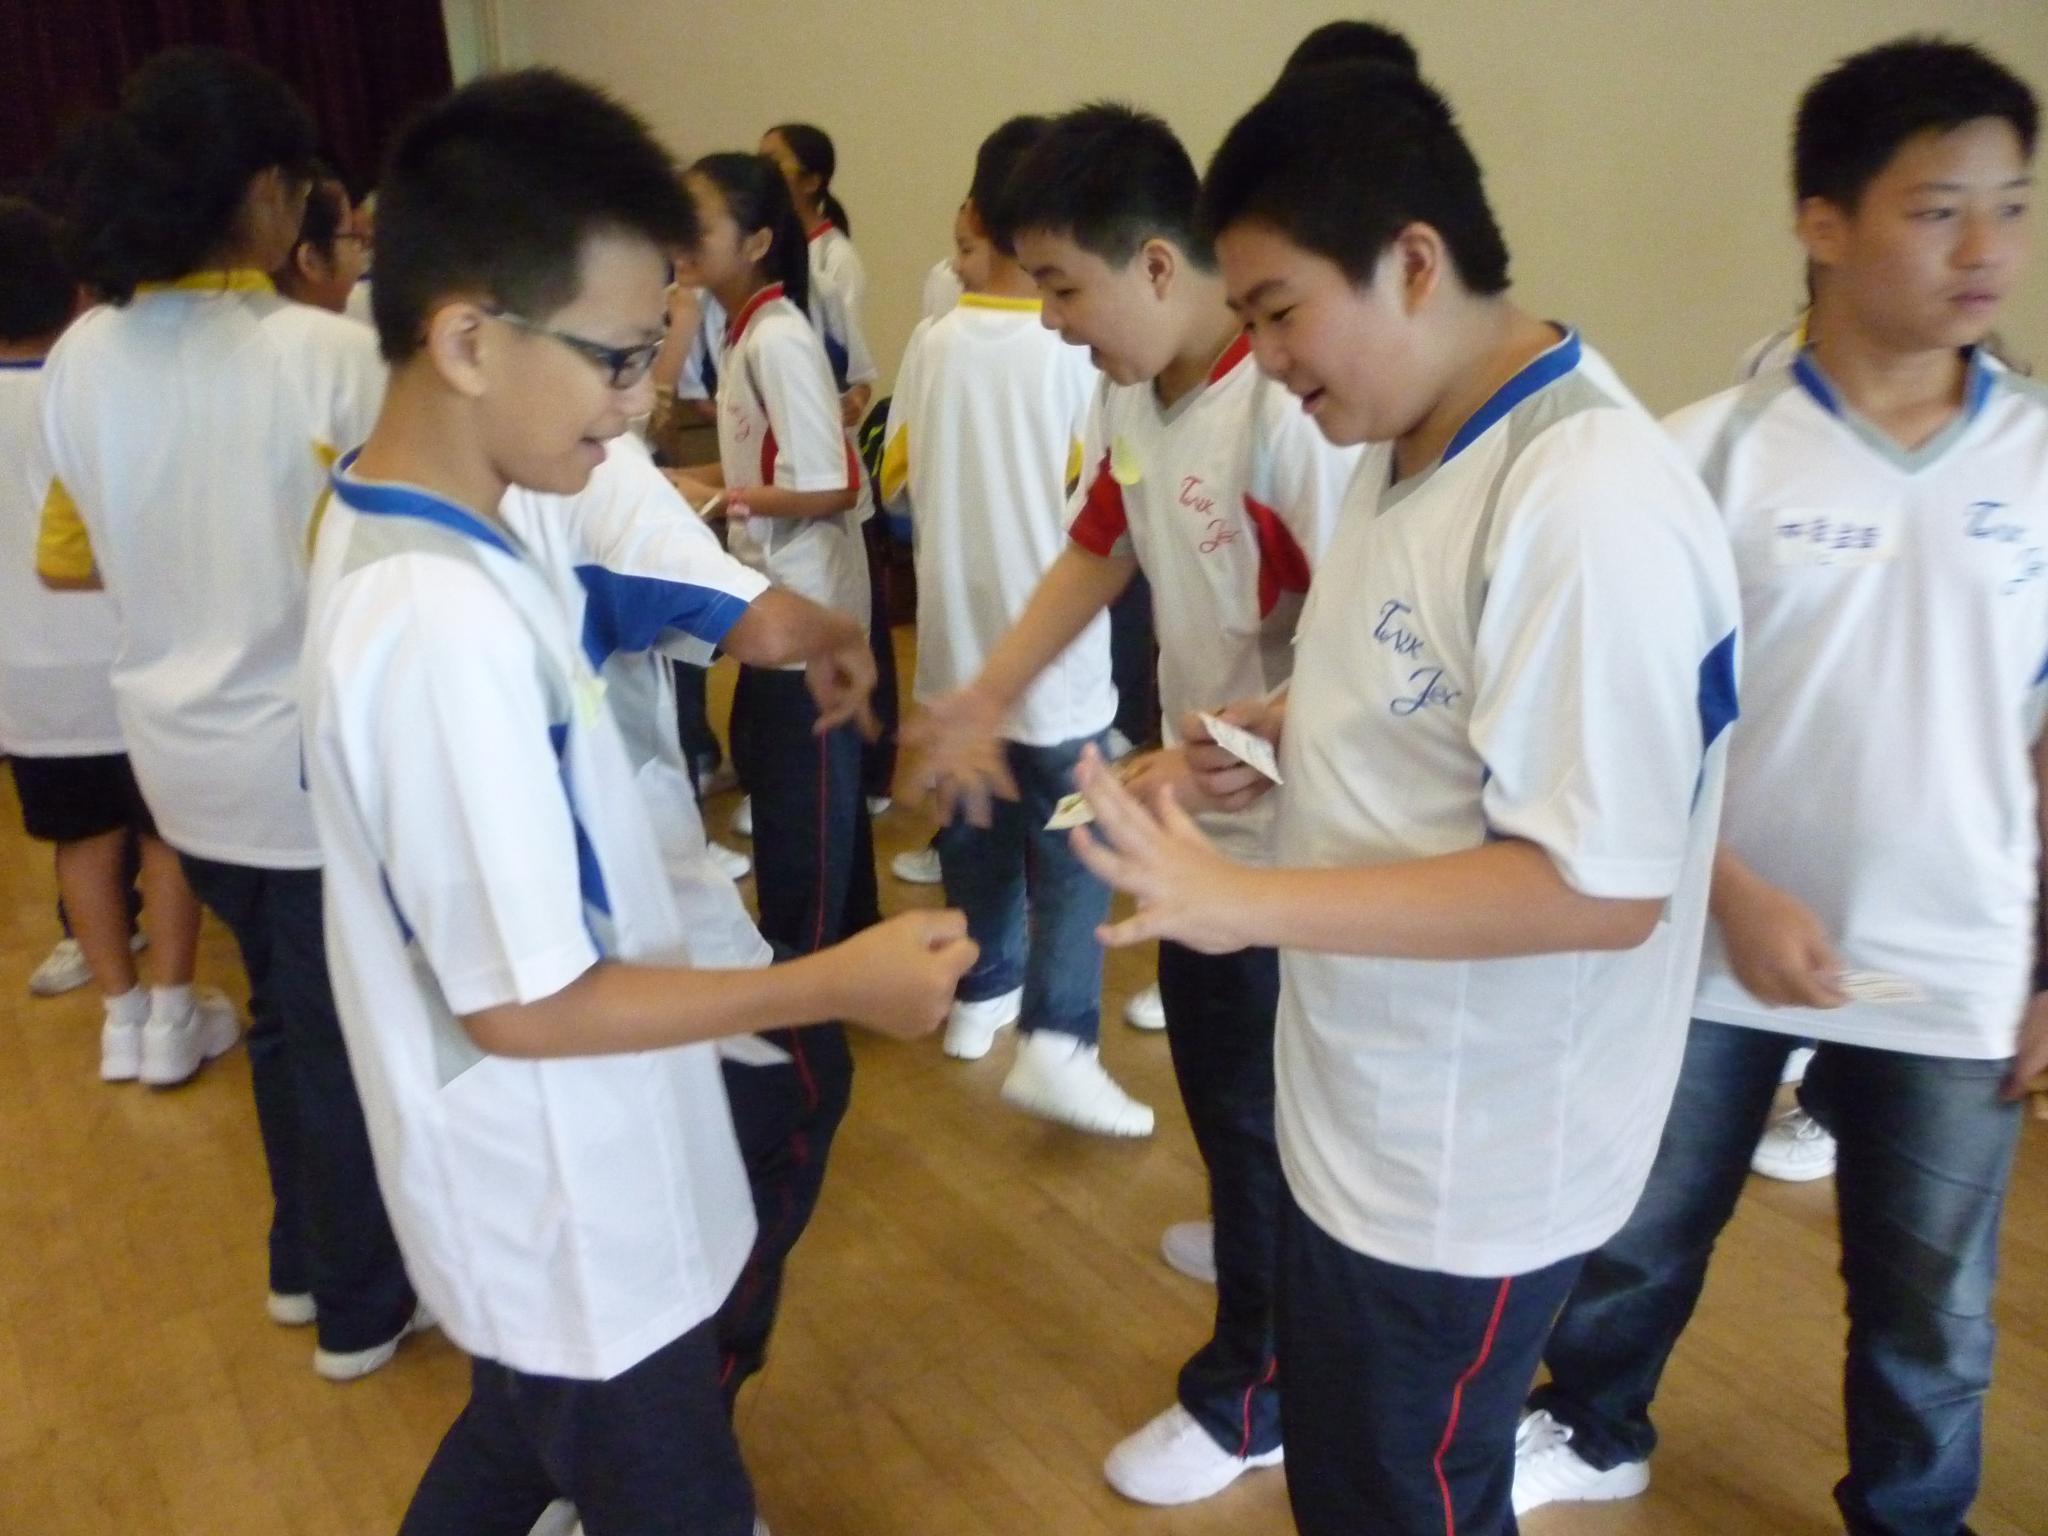 Students are participating in the activities enthusiastically.